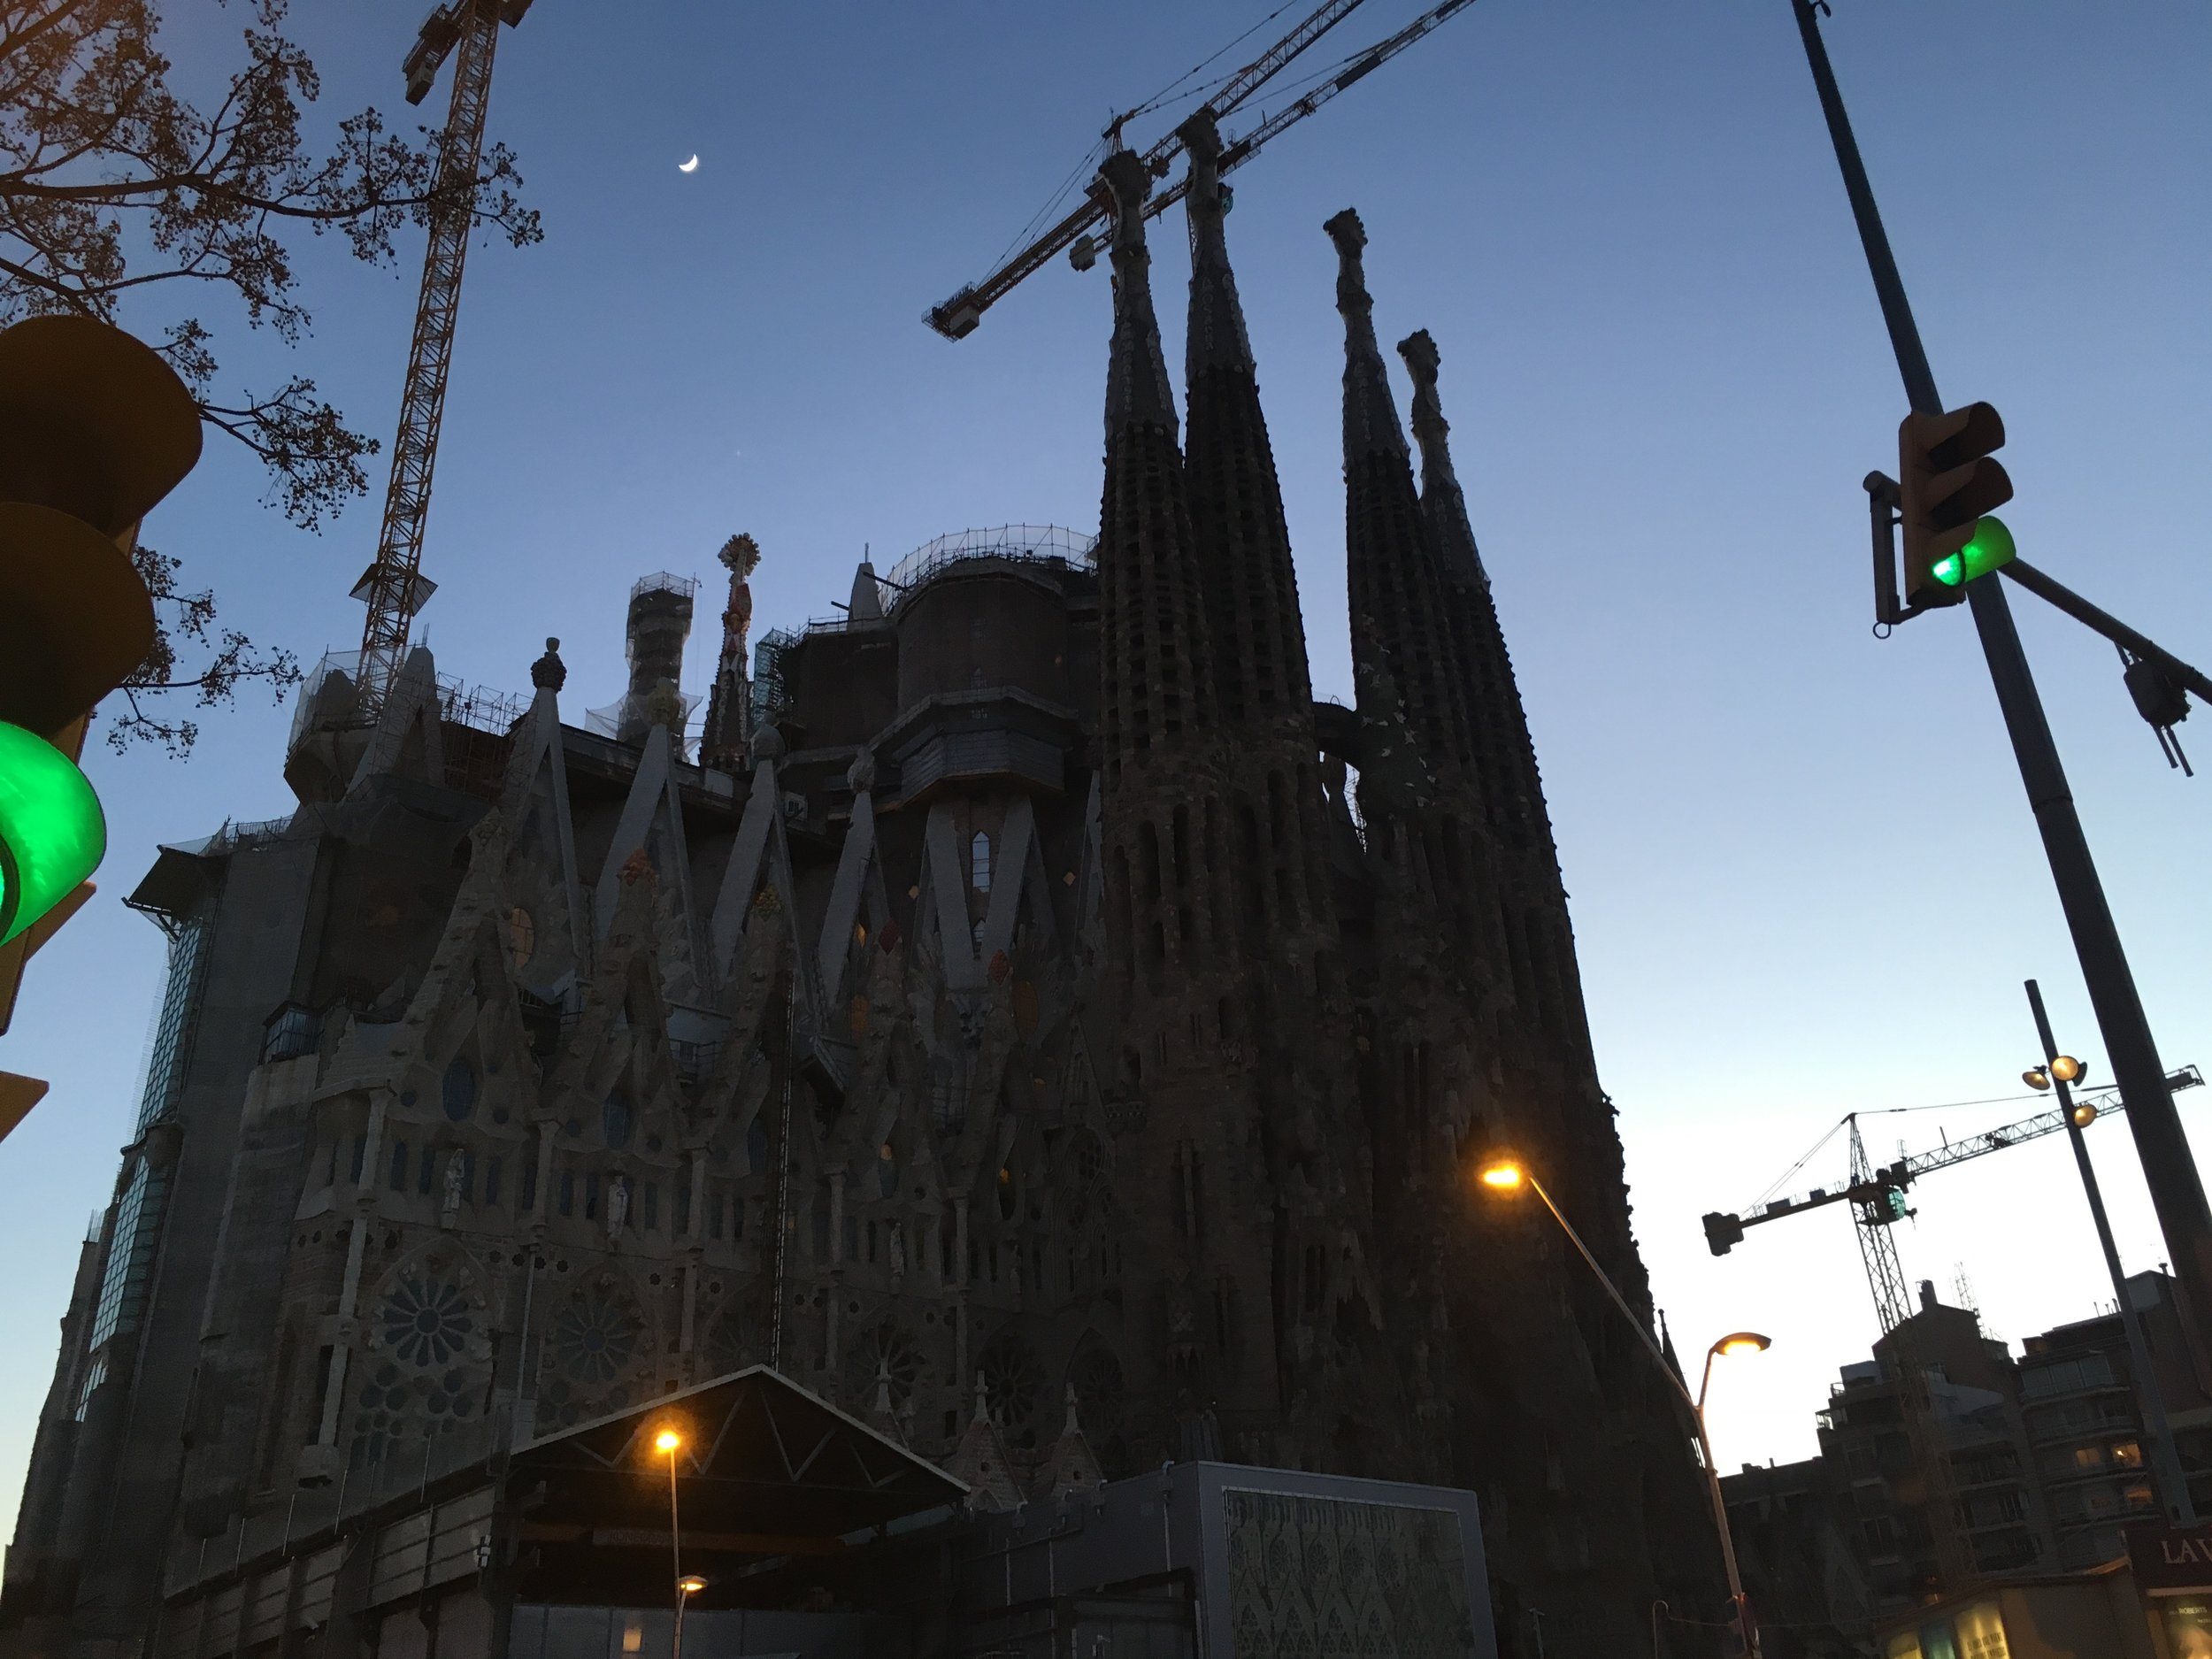 Took this shot around 5am of the Sagrada Familia before heading to the airport.